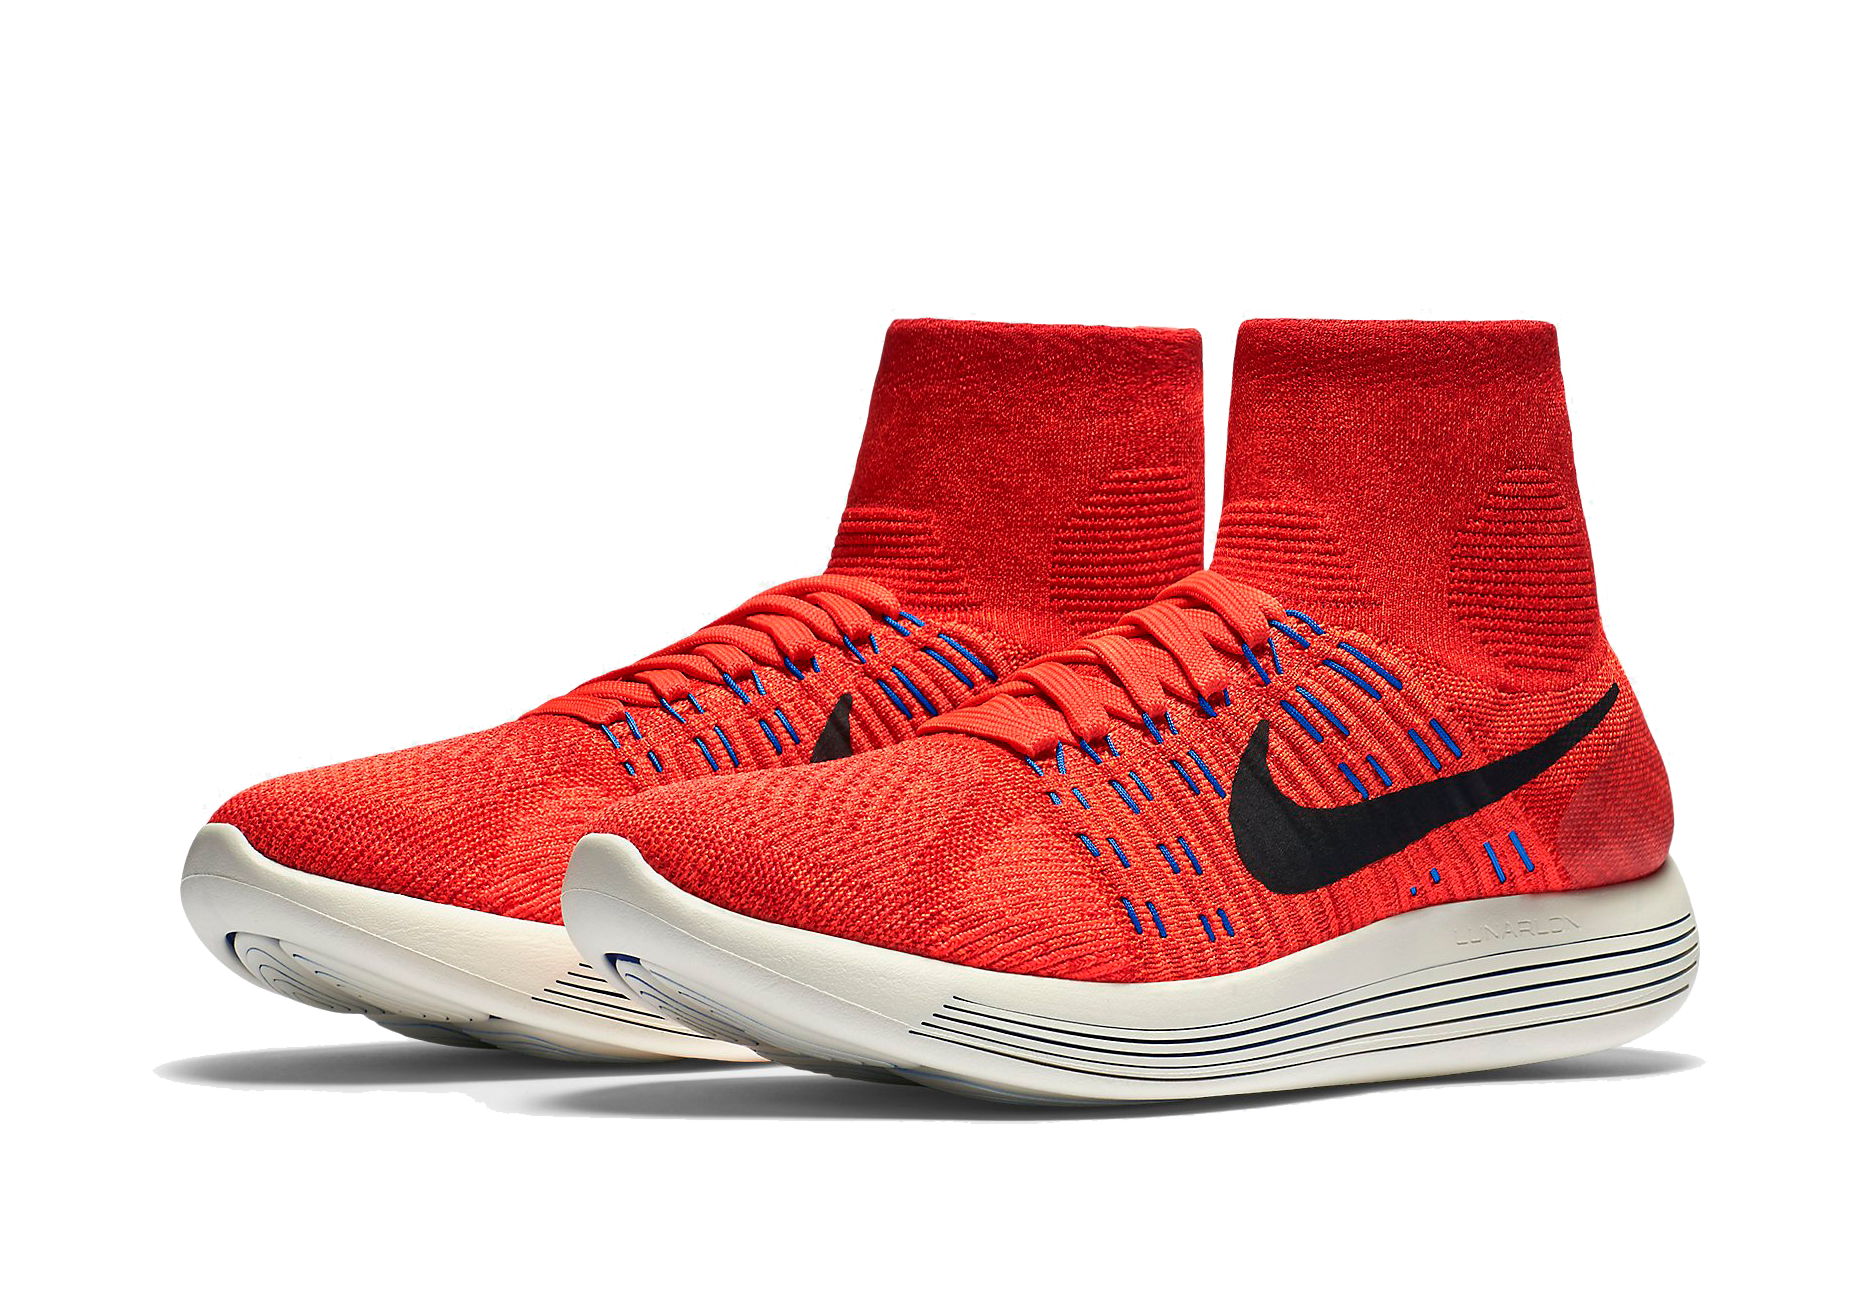 c25f2ea8dceb NIKE-FLYKNIT-LUNAREPIC-double.png (1860×1312)